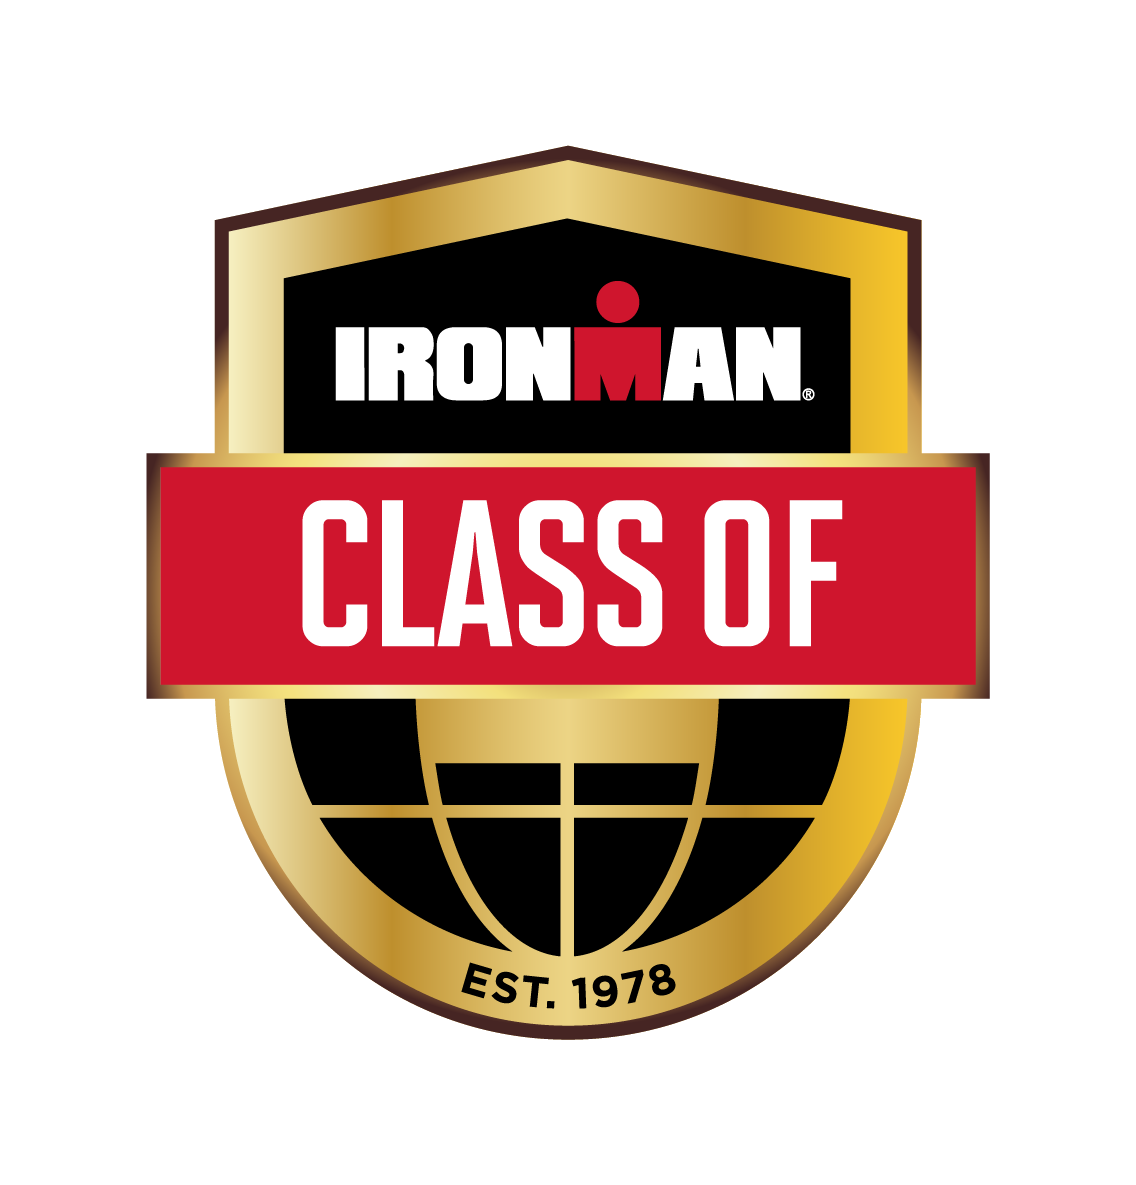 You Never Forget Your First IRONMAN: IRONMAN Celebrates Athletes